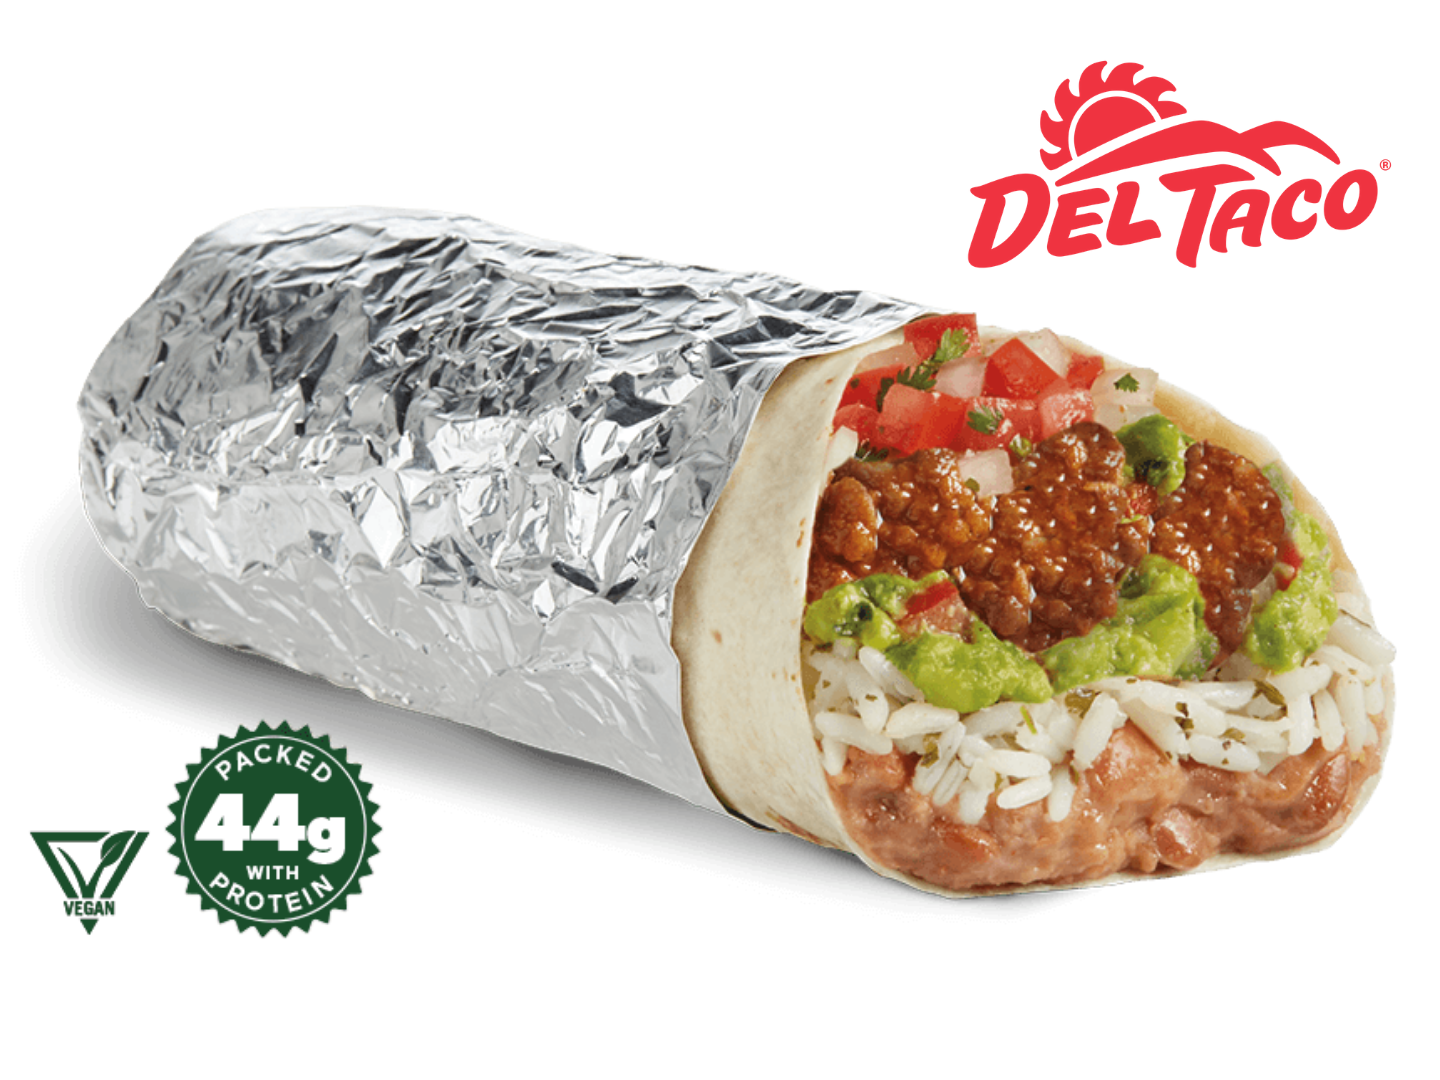 Del Taco Launches Two New Beyond Meat Vegan Burritos